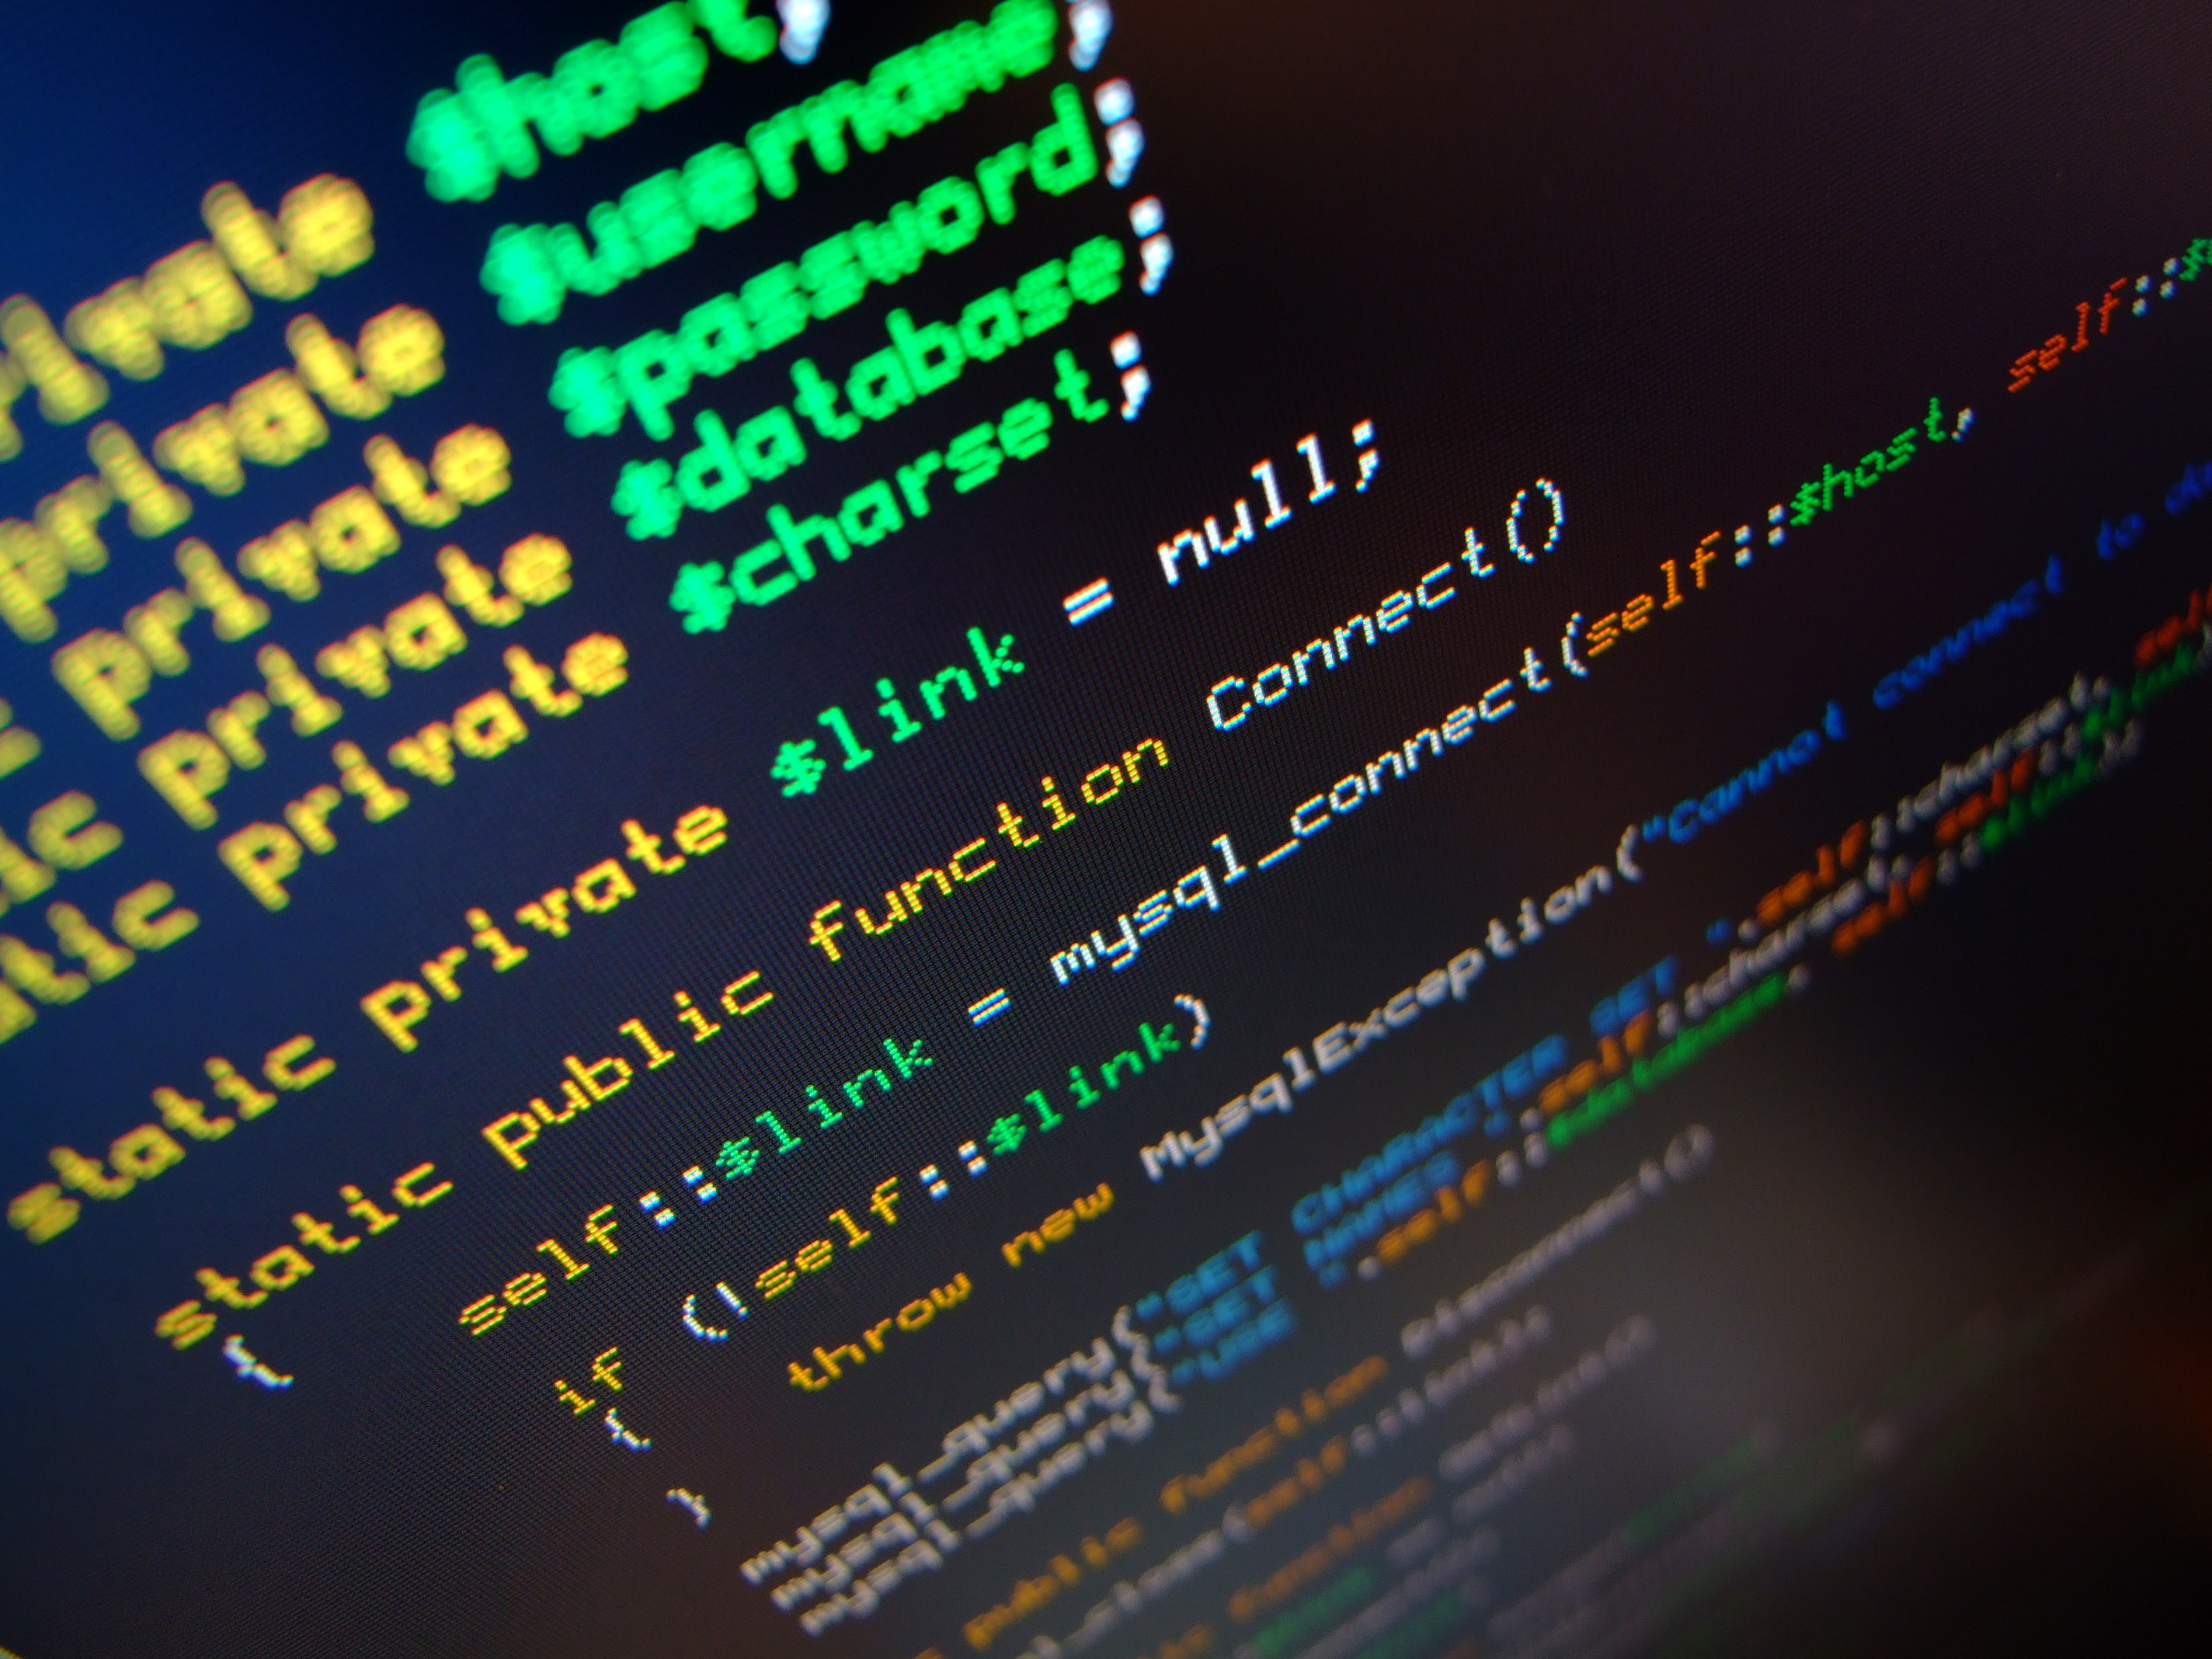 Code Terminal Wallpaper 2848x2136 Code Terminal Php Databases 2848x2136